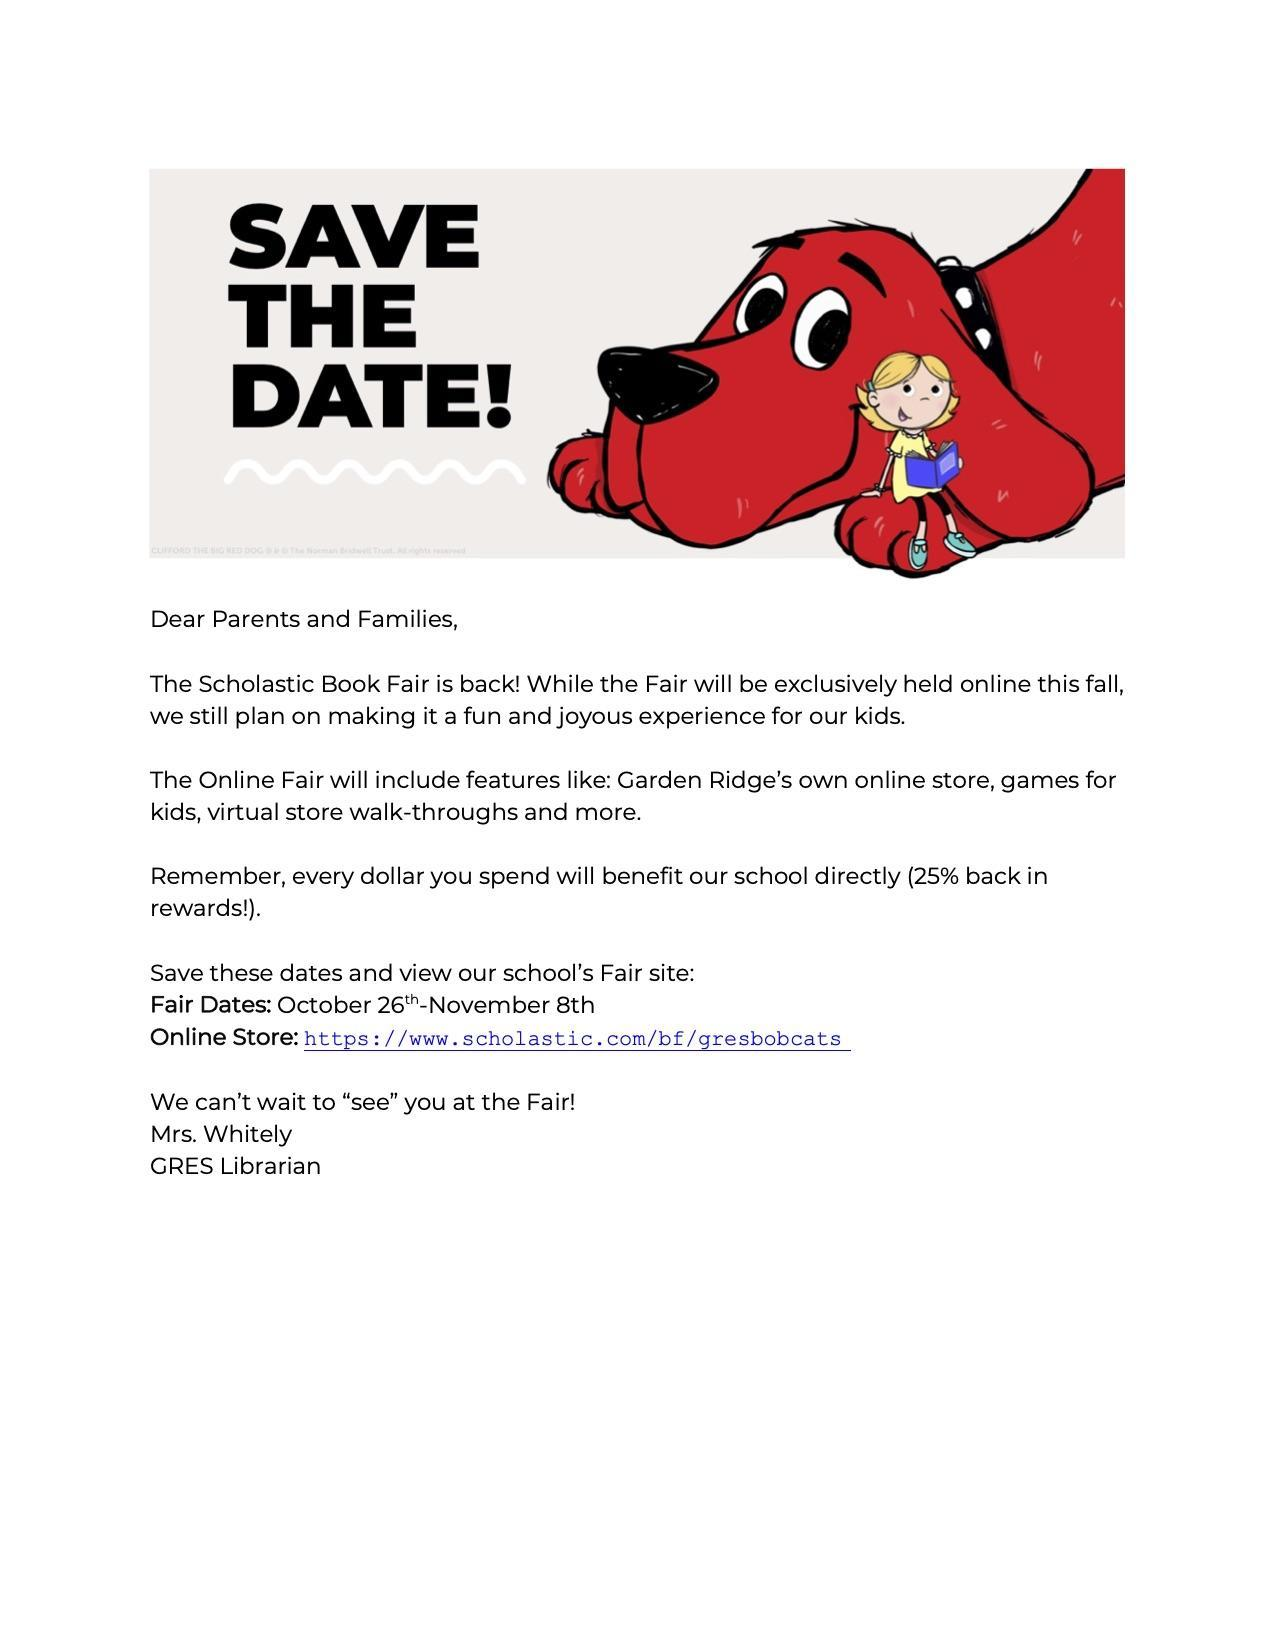 Save the Date for the Book Fair